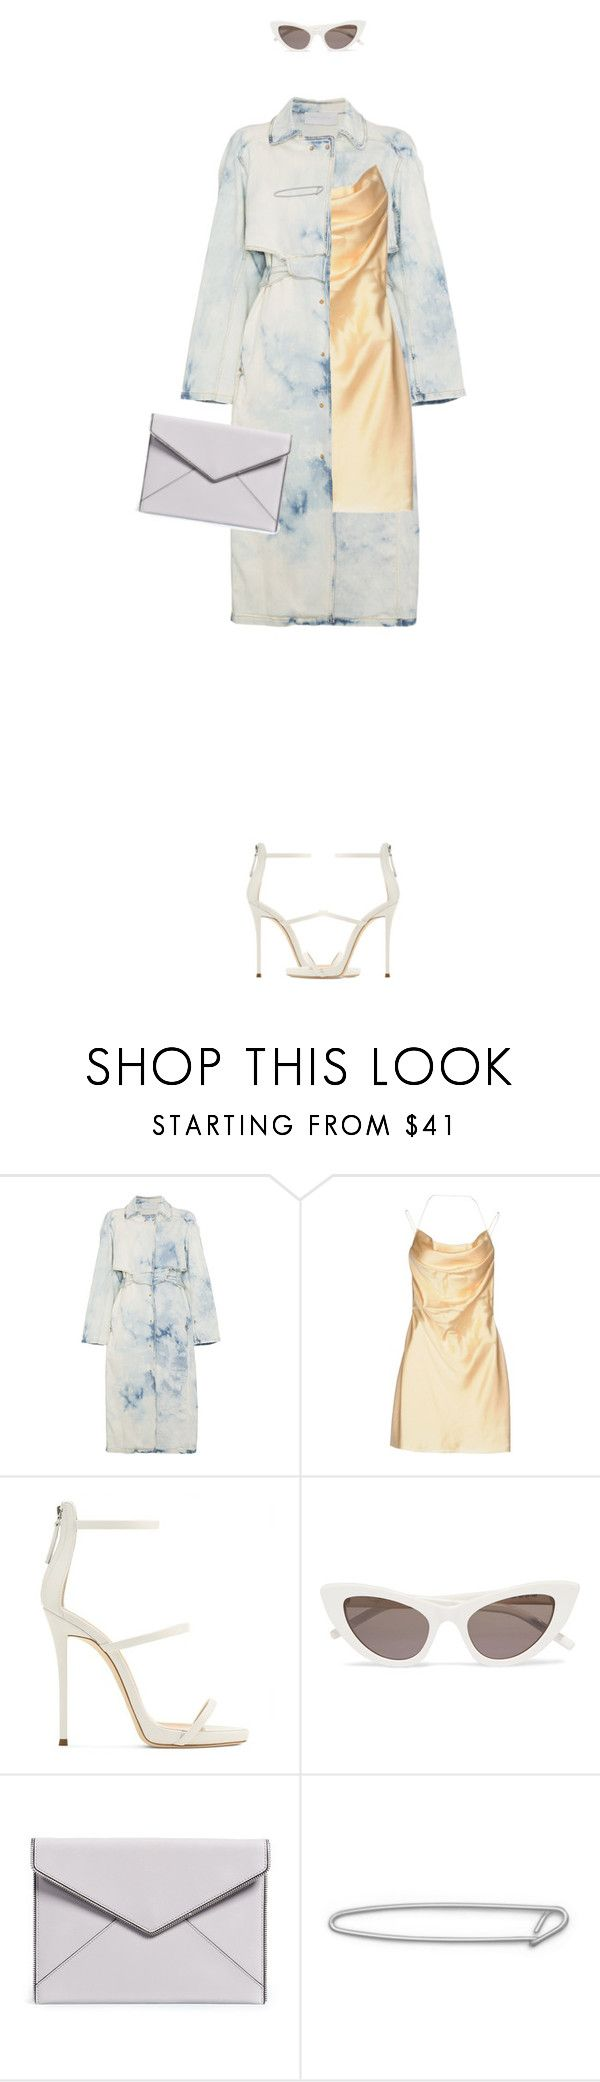 """""""#A Lucky Number"""" by confettio ❤ liked on Polyvore featuring Esteban Cortazar, Yves Saint Laurent, Giuseppe Zanotti and Rebecca Minkoff"""